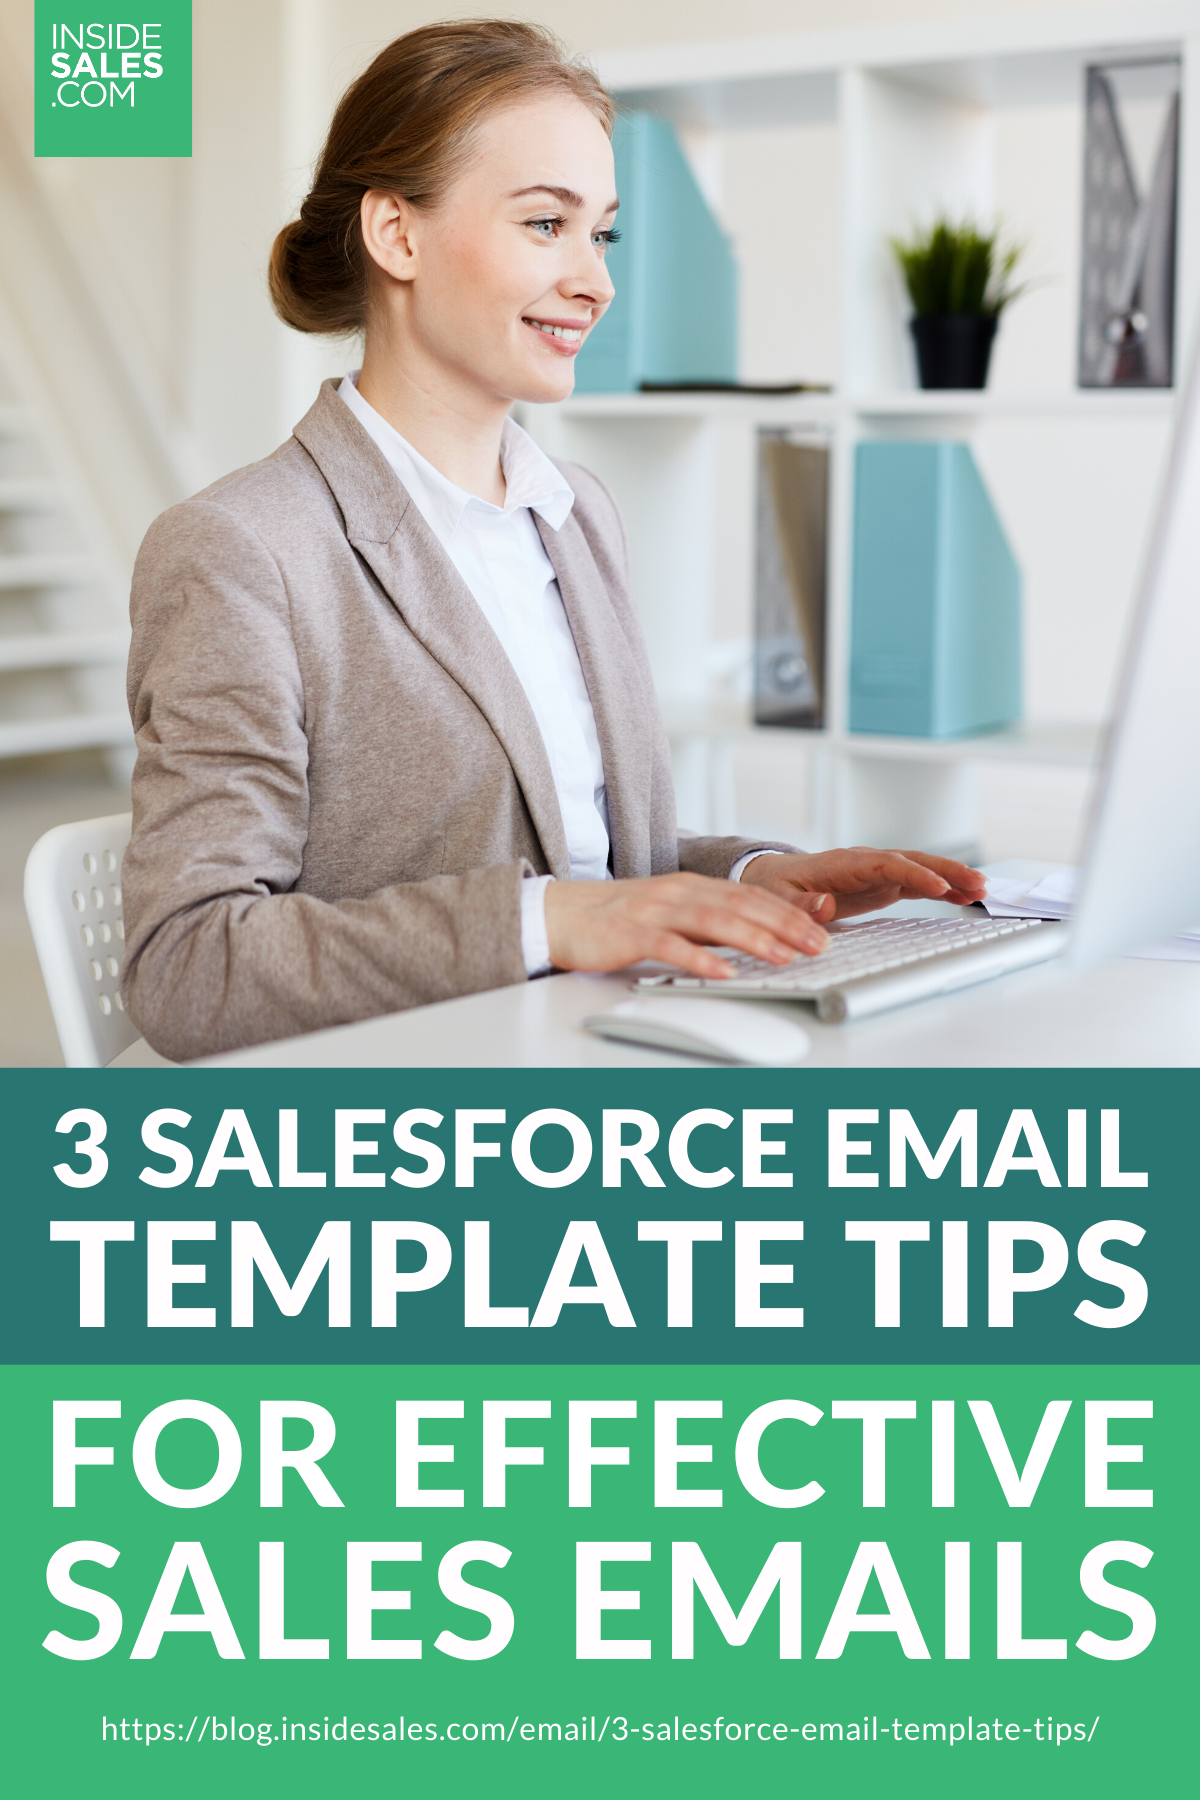 3 Salesforce Email Template Tips for Effective Sales ...